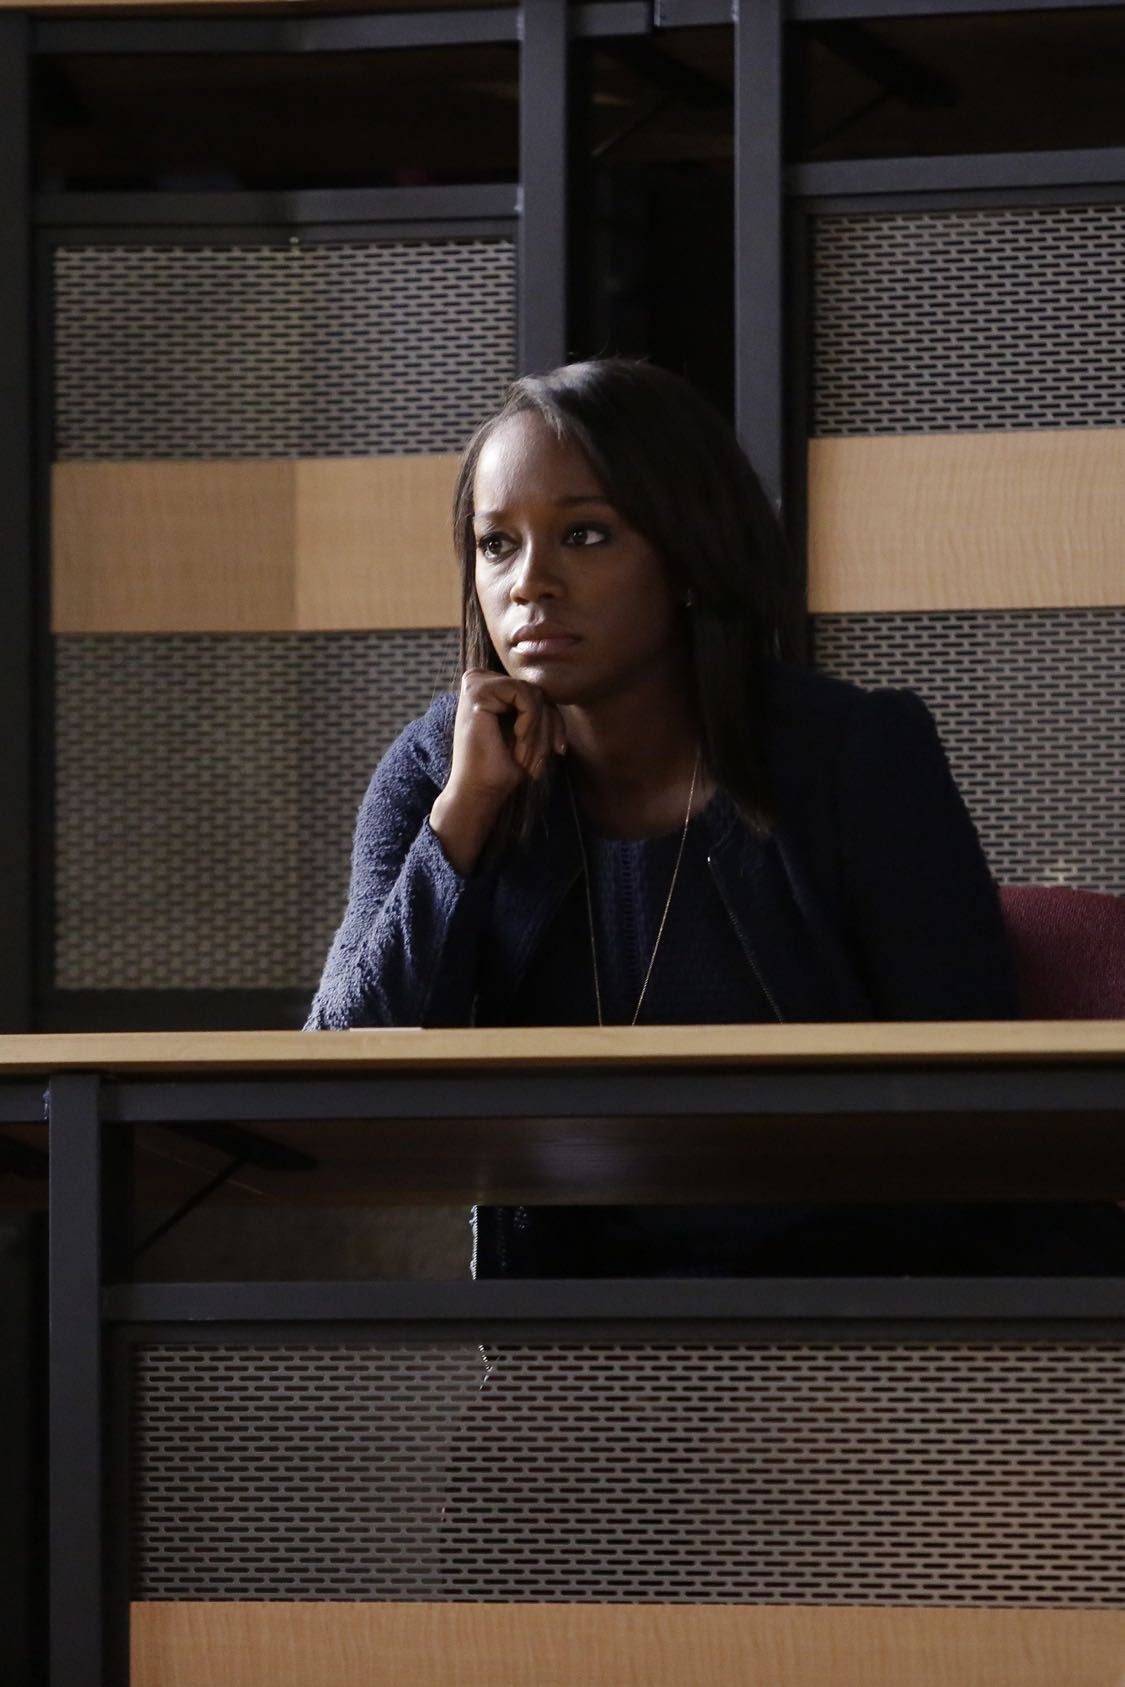 """HOW TO GET AWAY WITH MURDER - """"There Are Worse Things Than Murder"""" - With her job on the line, Annalise fights back against the Middleton University Board. Meanwhile, secrets are exposed as the Keating 5 compete to take on the case of a battered woman accused of murdering her husband, on """"How to Get Away with Murder,"""" THURSDAY, SEPTEMBER 29 (10:00-11:00 p.m. EDT), on the ABC Television Network. (ABC/Nicole WIlder) AJA NAOMI KING"""